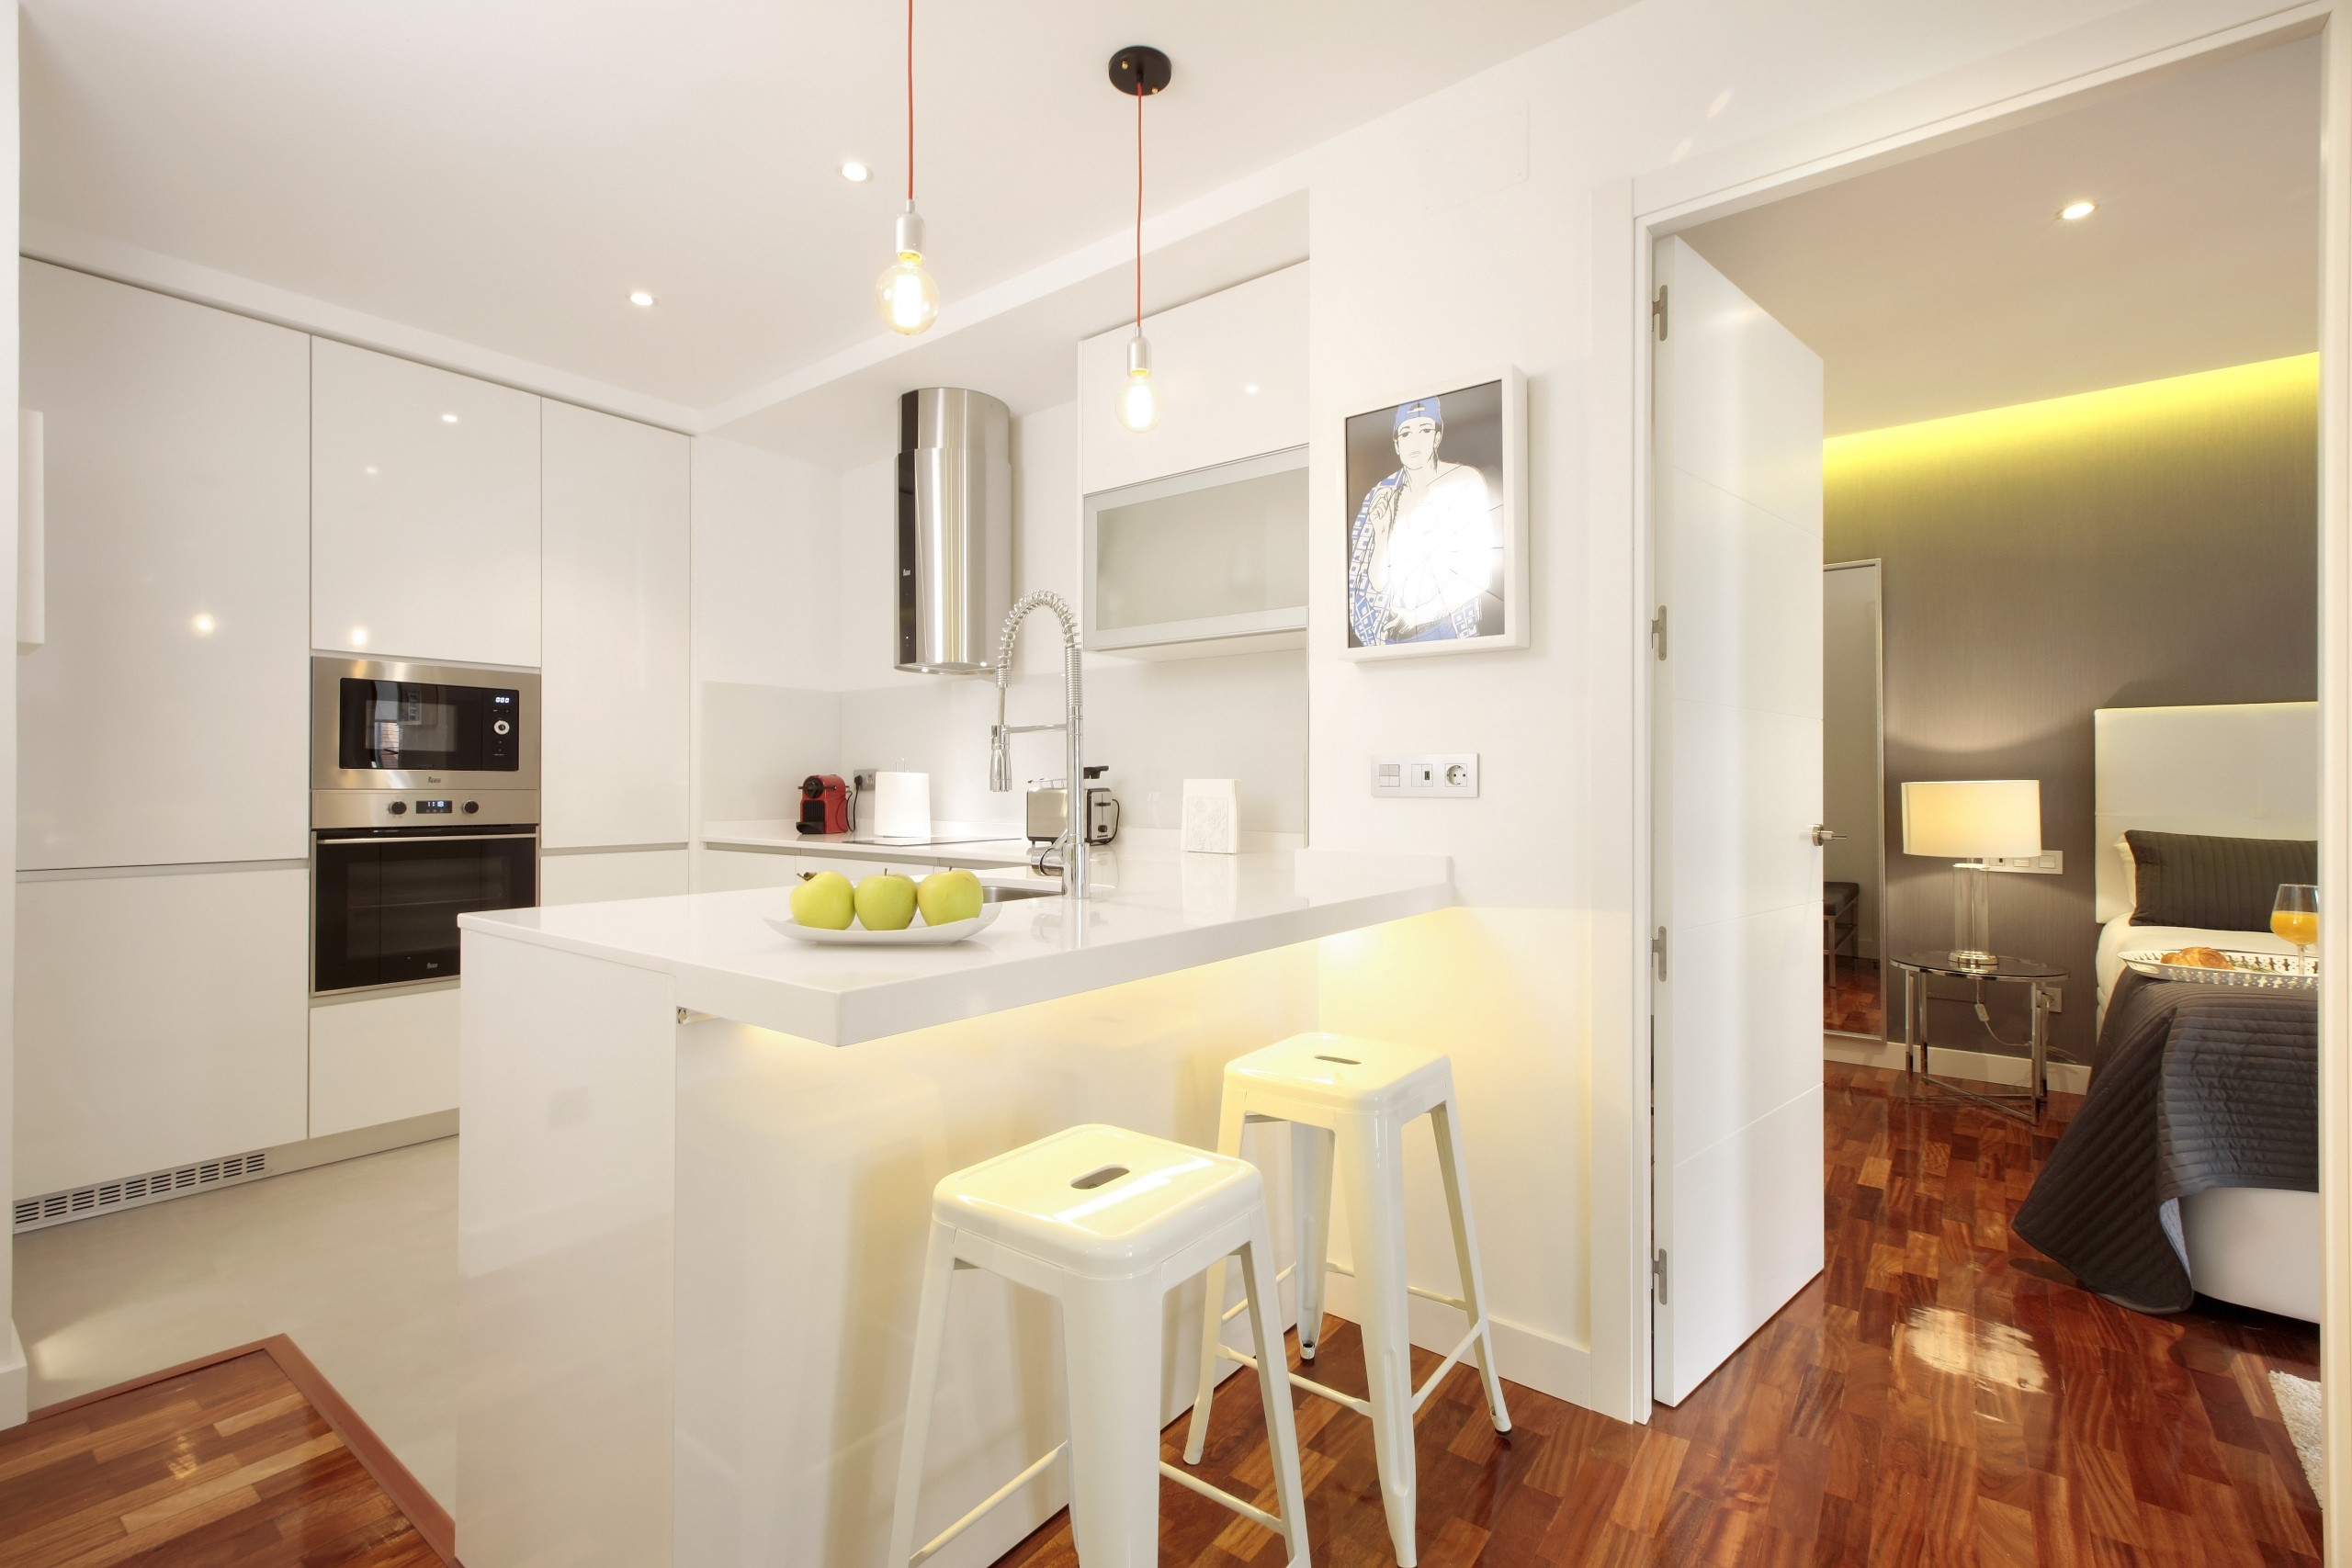 Malasa 241 A Center Madflats Collection Apartments In Madrid